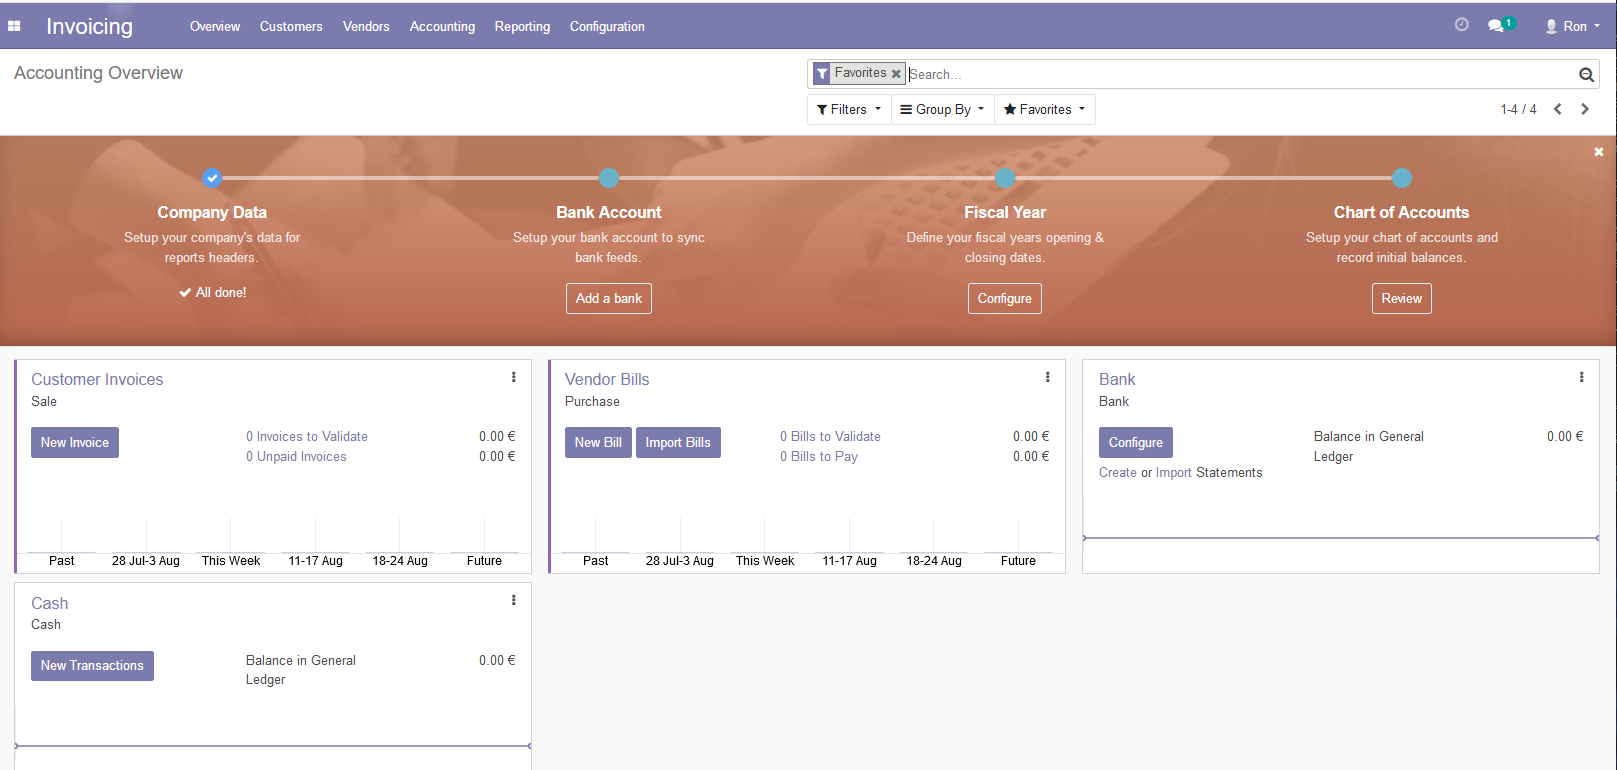 Odoo12CE InvoicingDashboard with ShowFullAccountingFeatures enabled